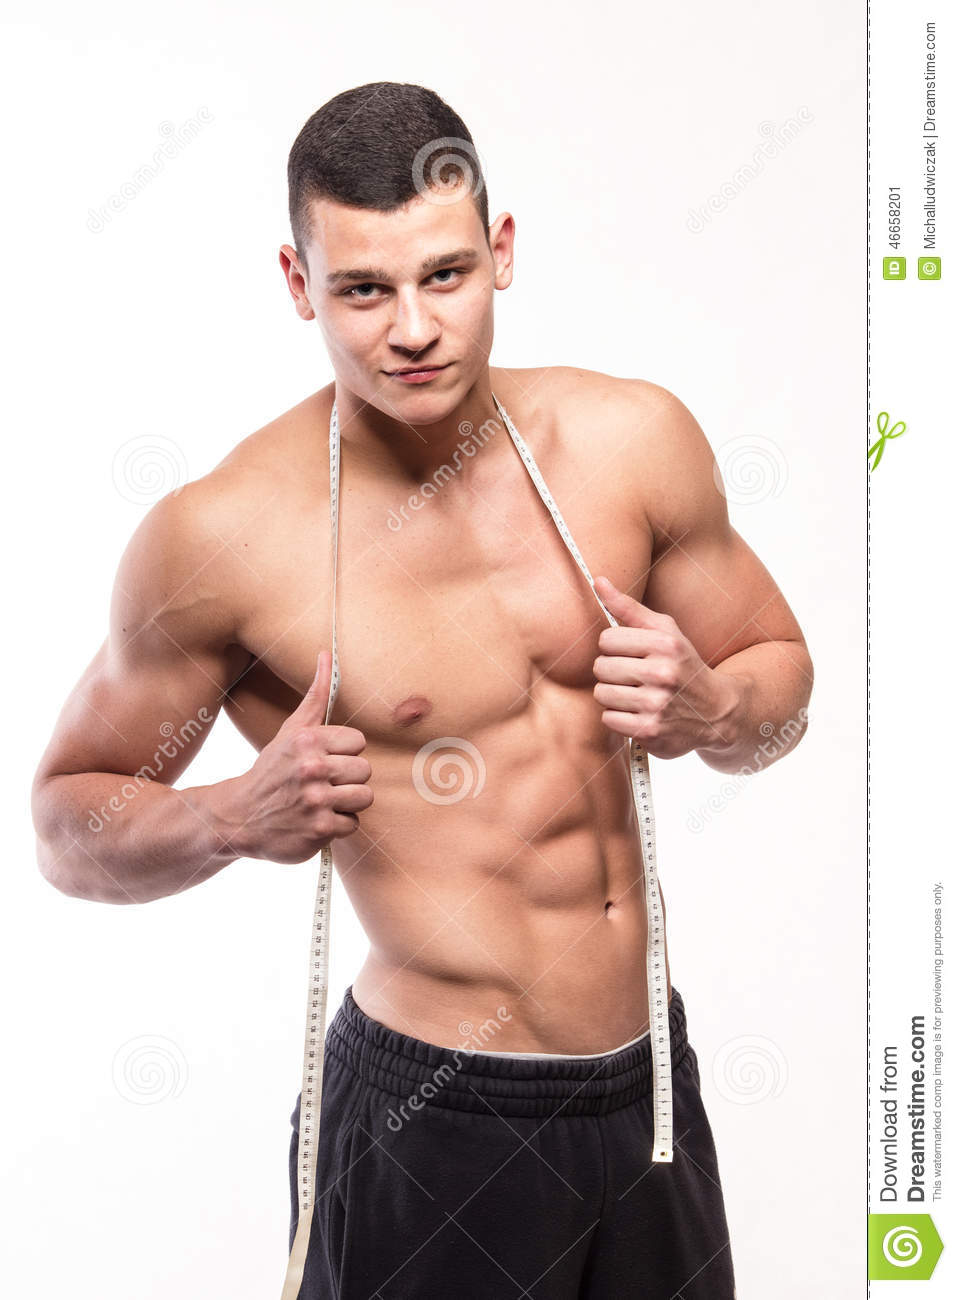 fitness muscular man with body measure healthy exercising